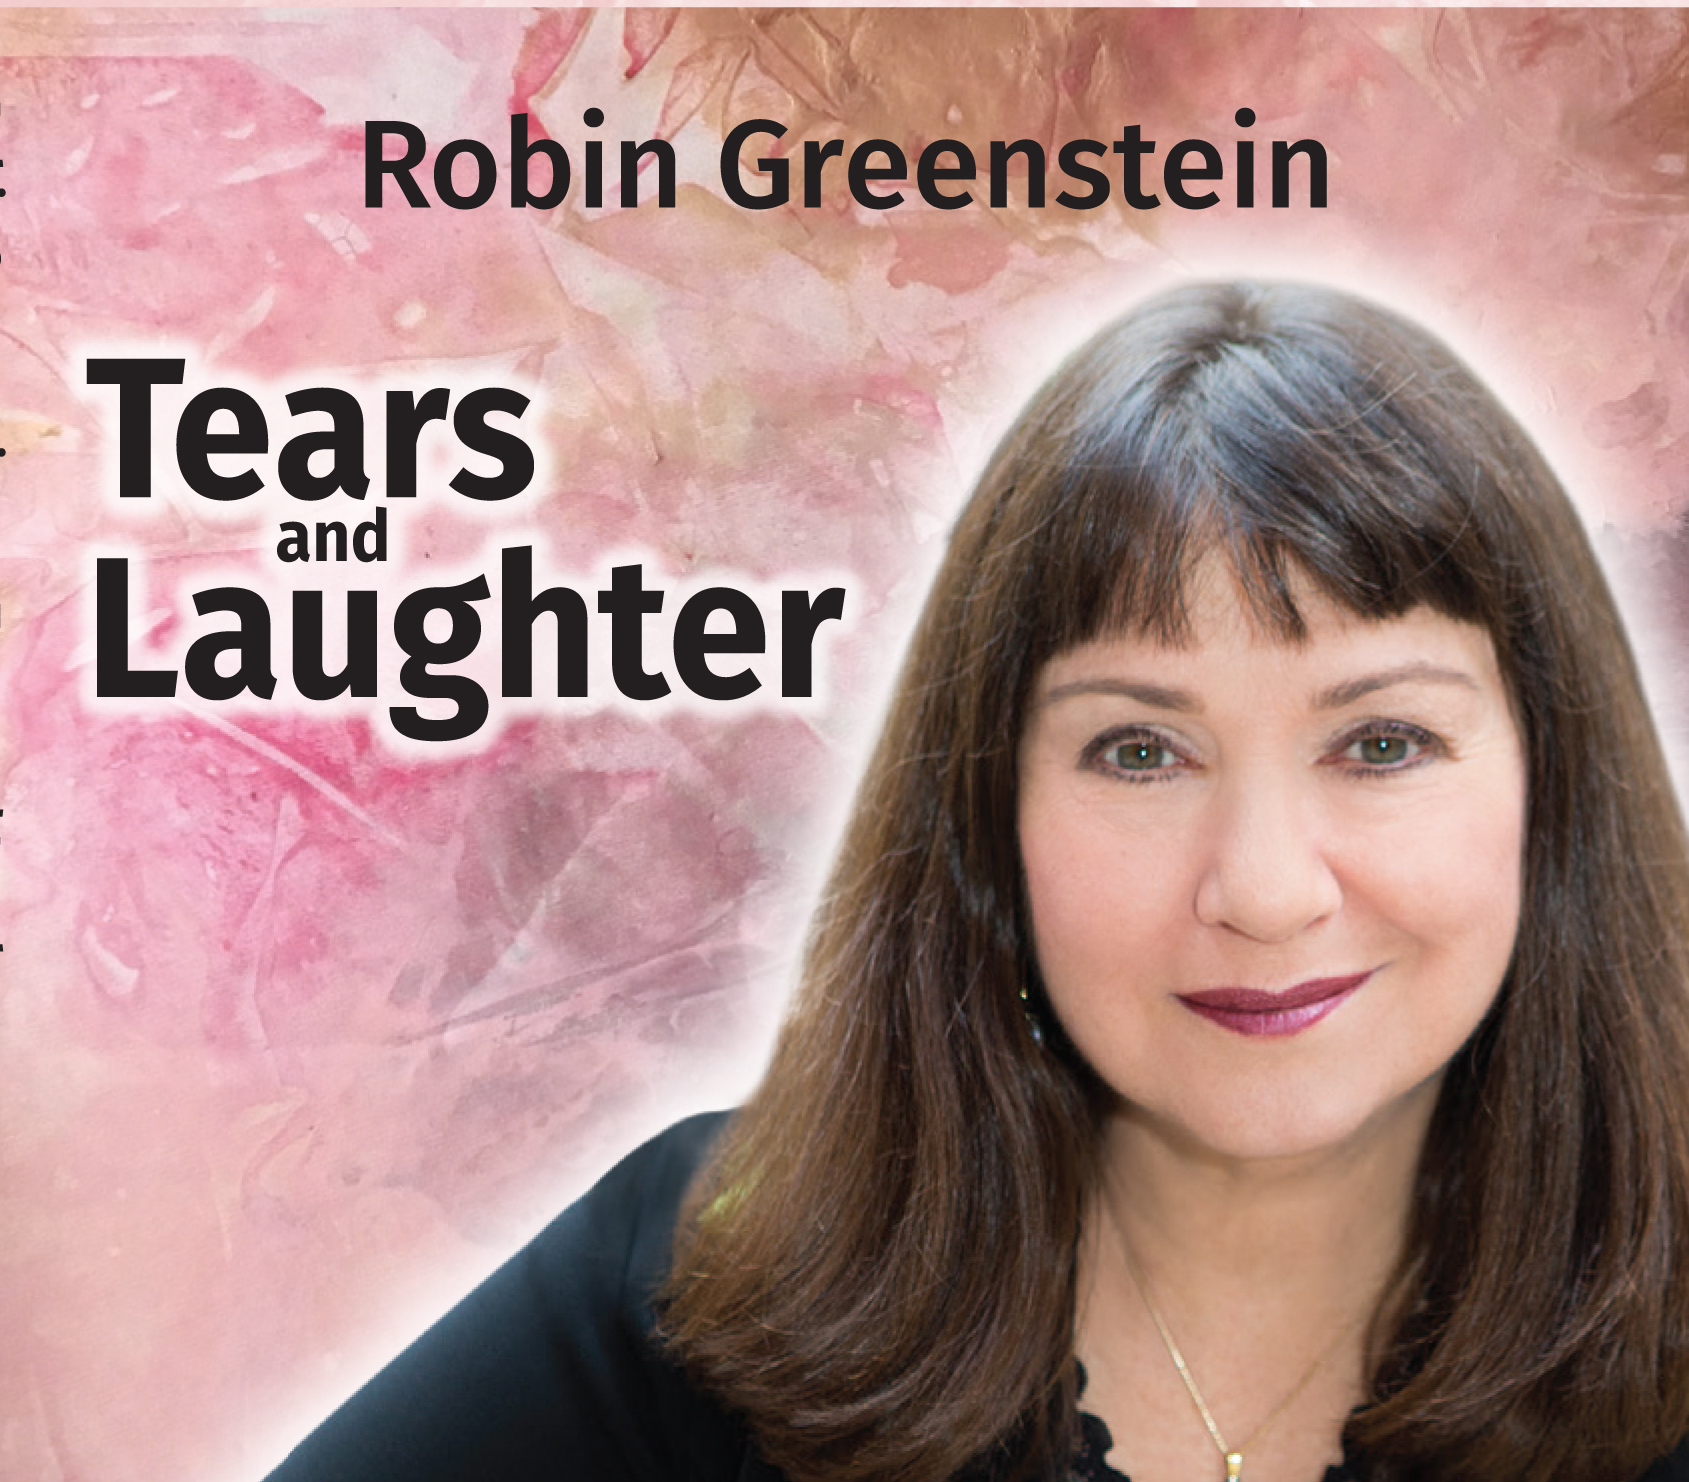 Robin Greenstein's Tears and Laughter